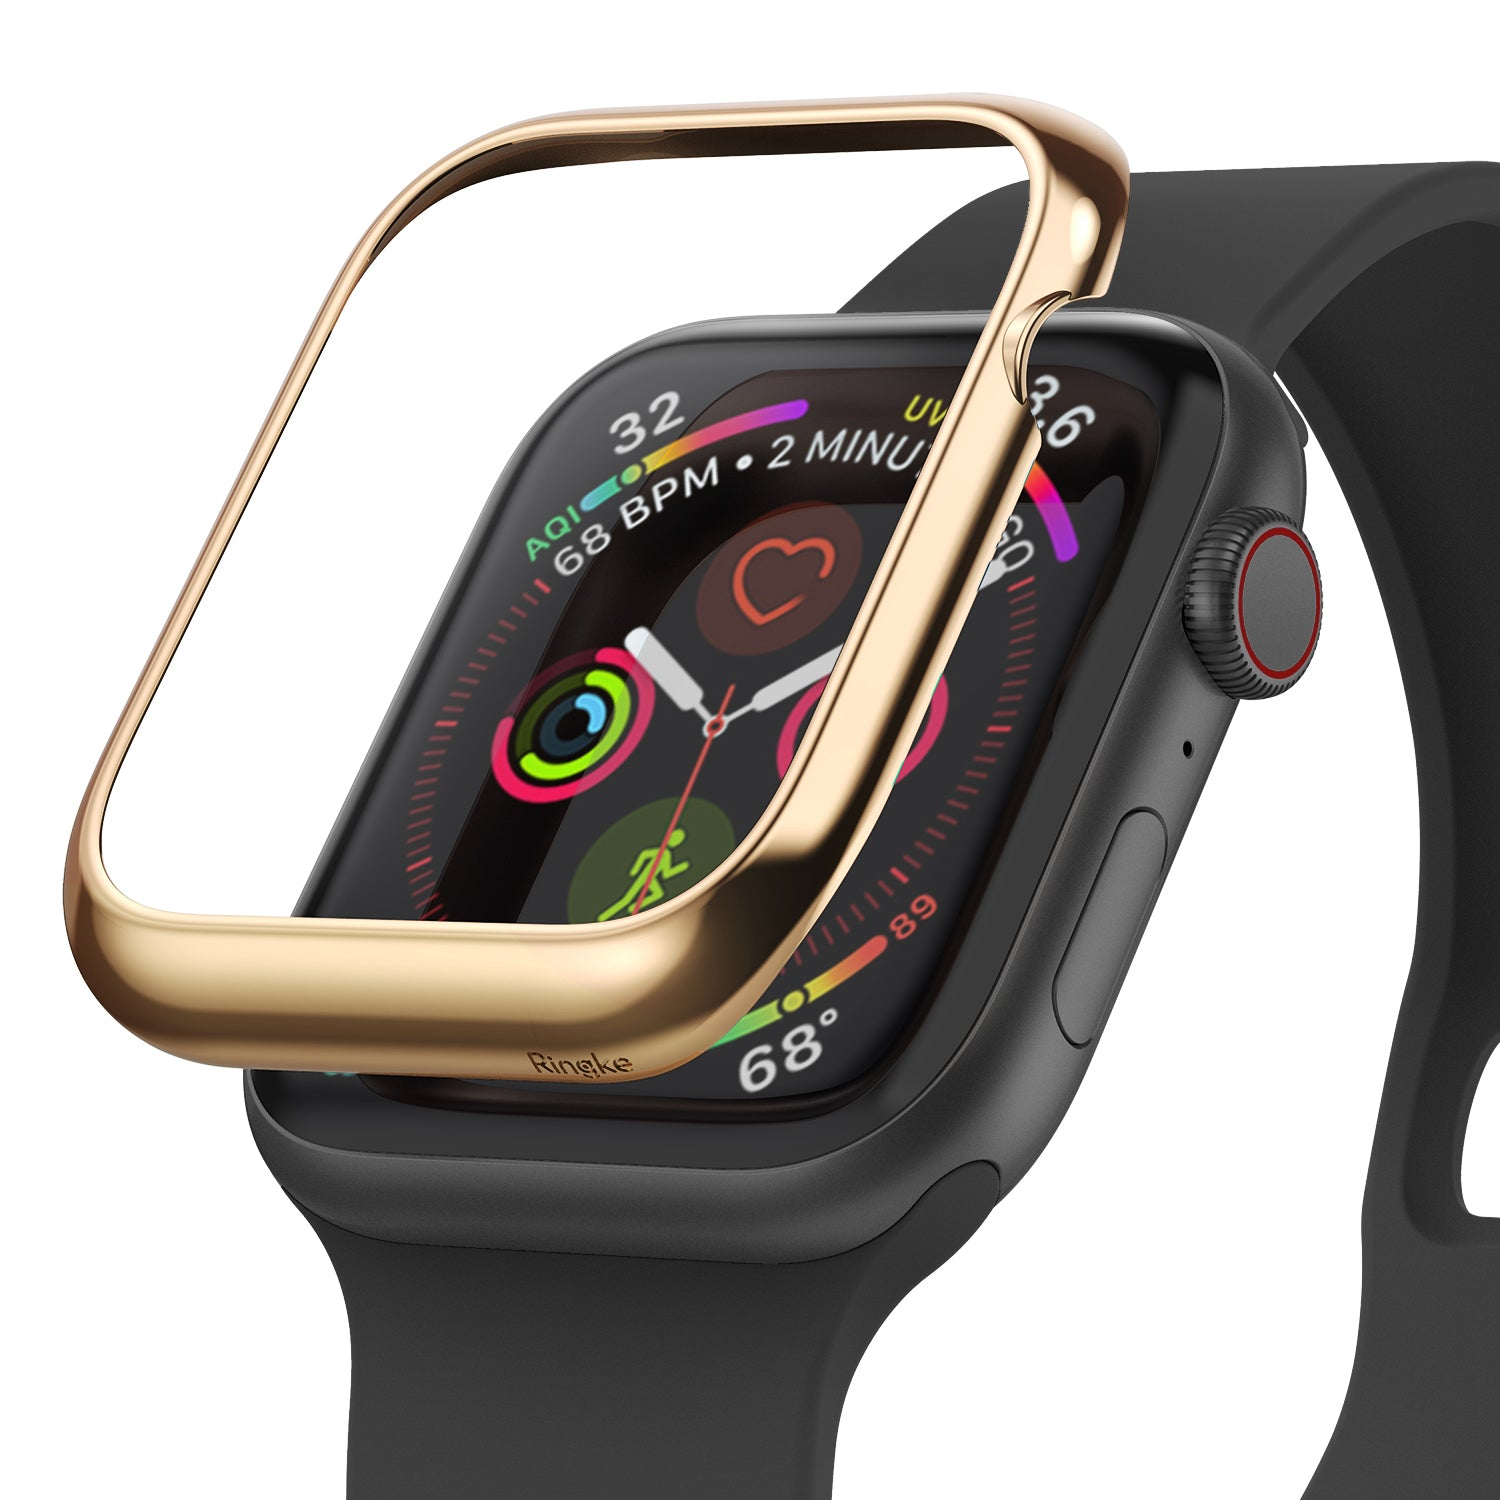 ringke bezel styling 40-05 glossy gold stainless steel on apple watch series 5 / 4 40mm